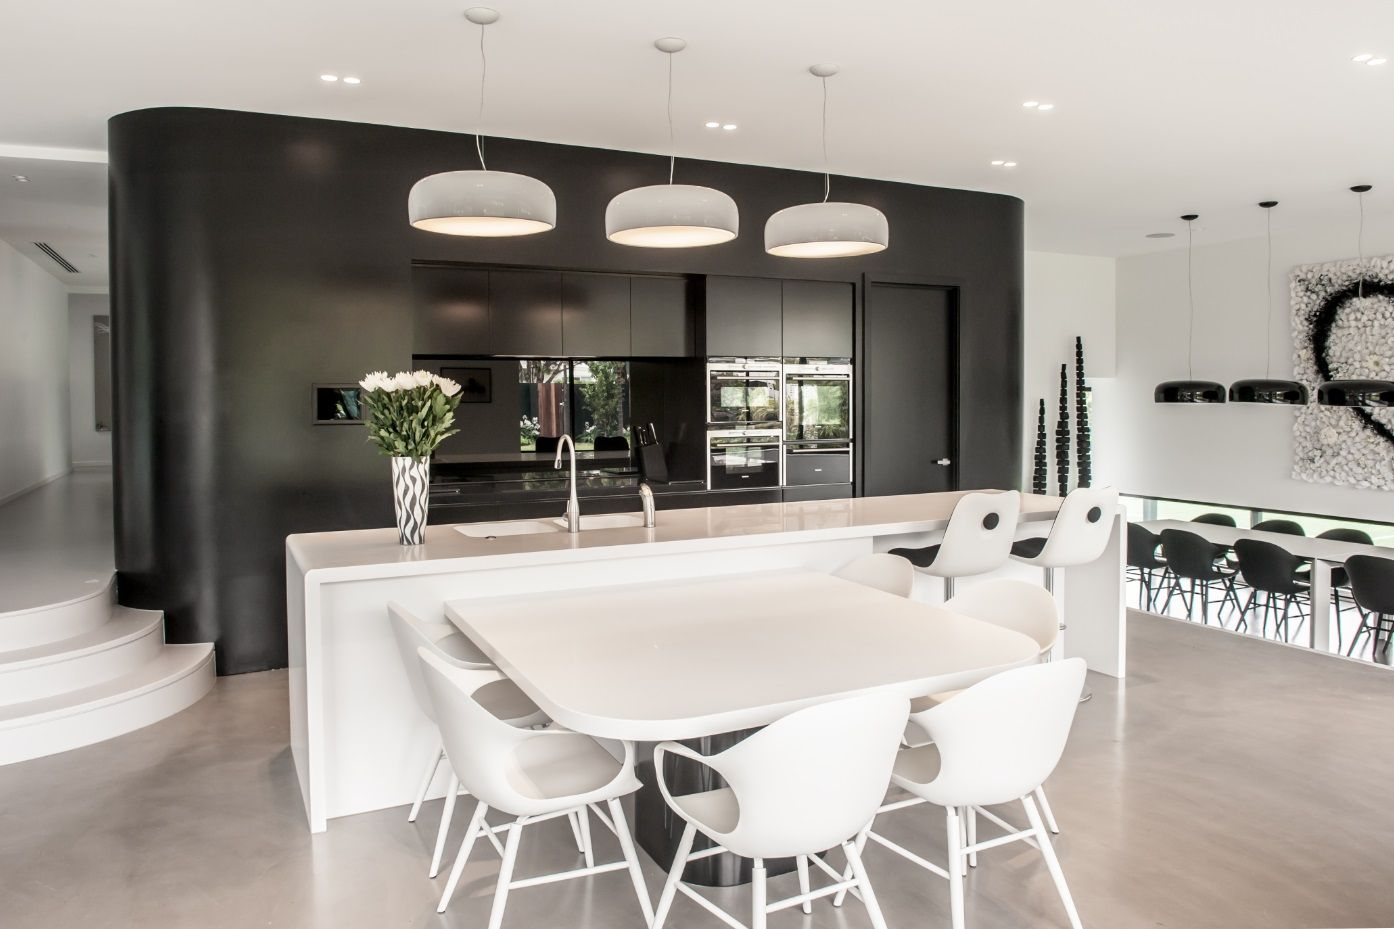 Marvelous Beautiful Use Of Deep Colour Corian® And A Light Colour Corian® In The  Kitchen Benchtops. The Black And White Combination Brings An Elegance To  This Room. Images